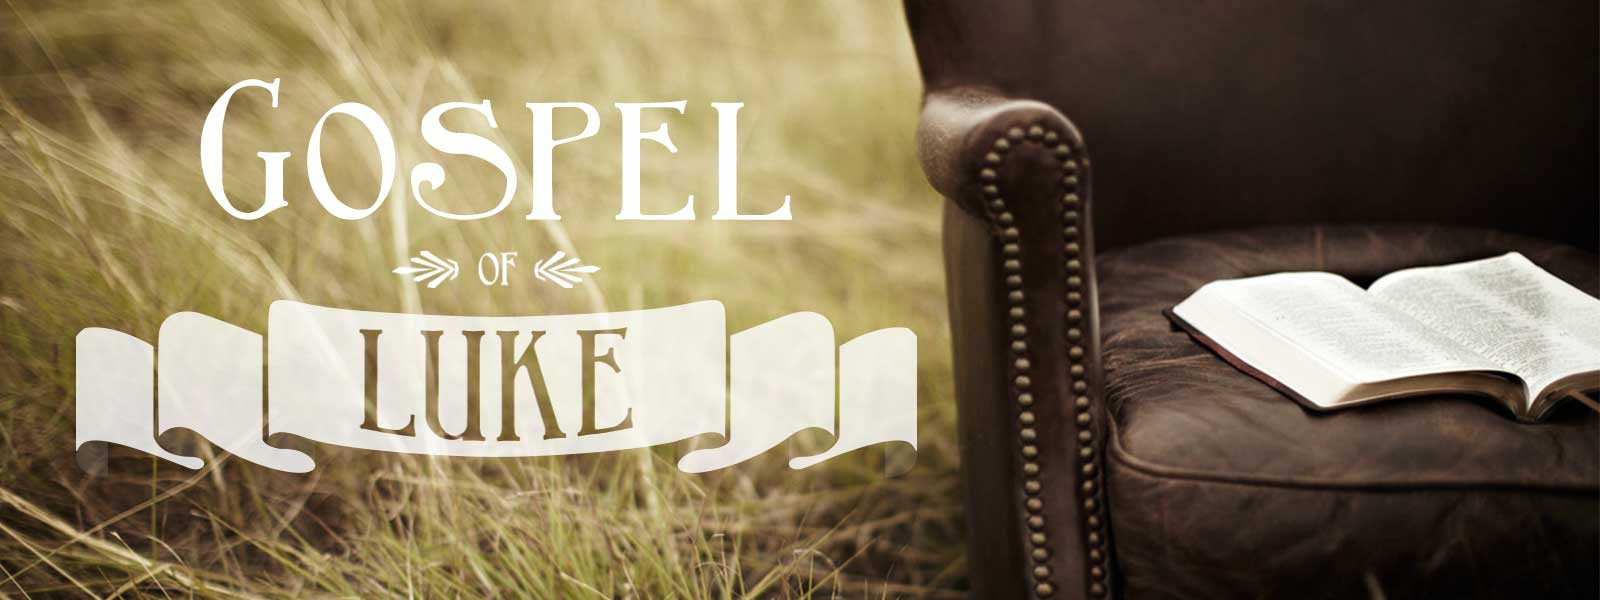 Gospel of Luke – Church Sermon Series Ideas